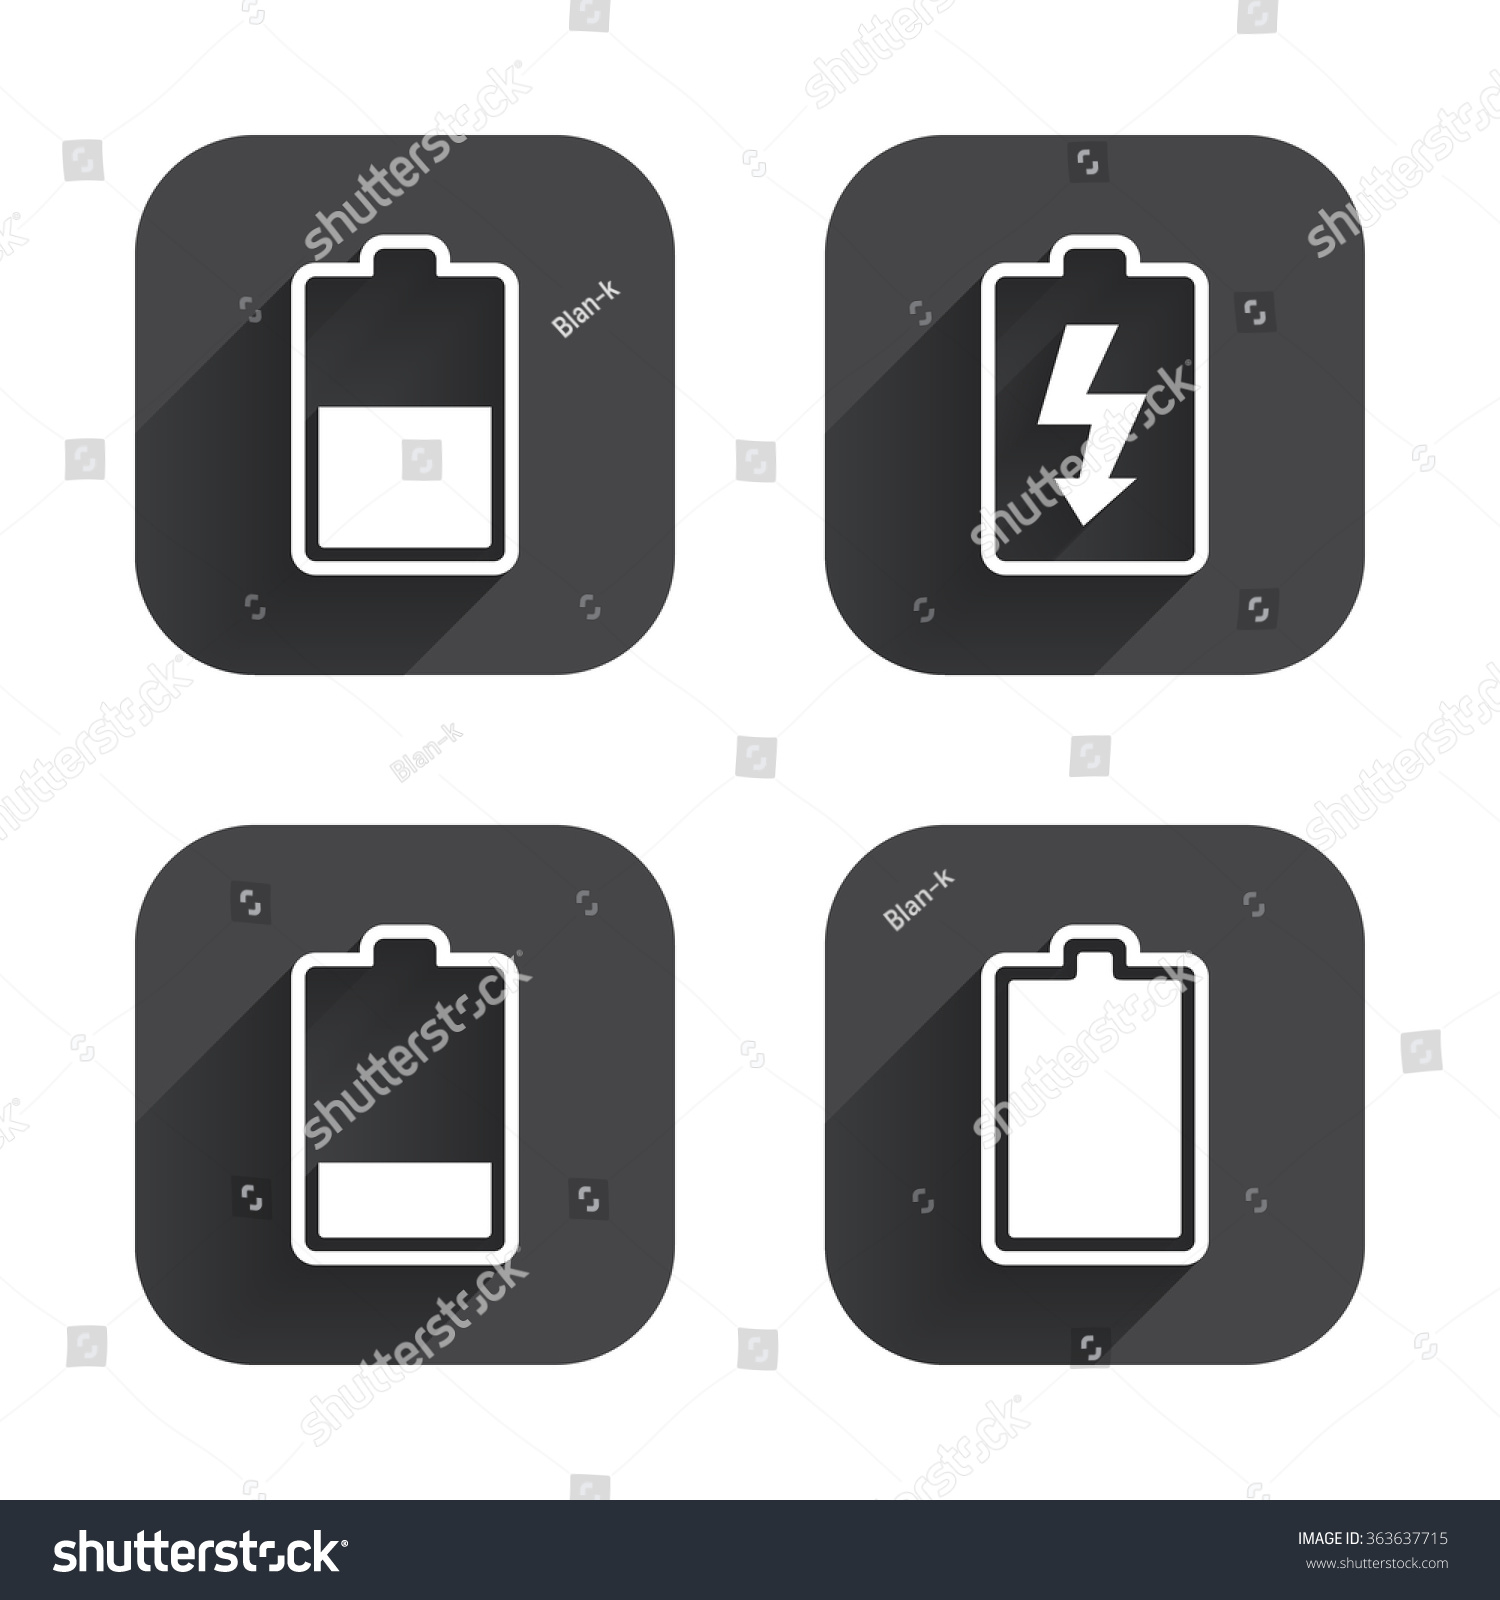 Battery Charging Icons Electricity Signs Symbols Stock Illustration ...